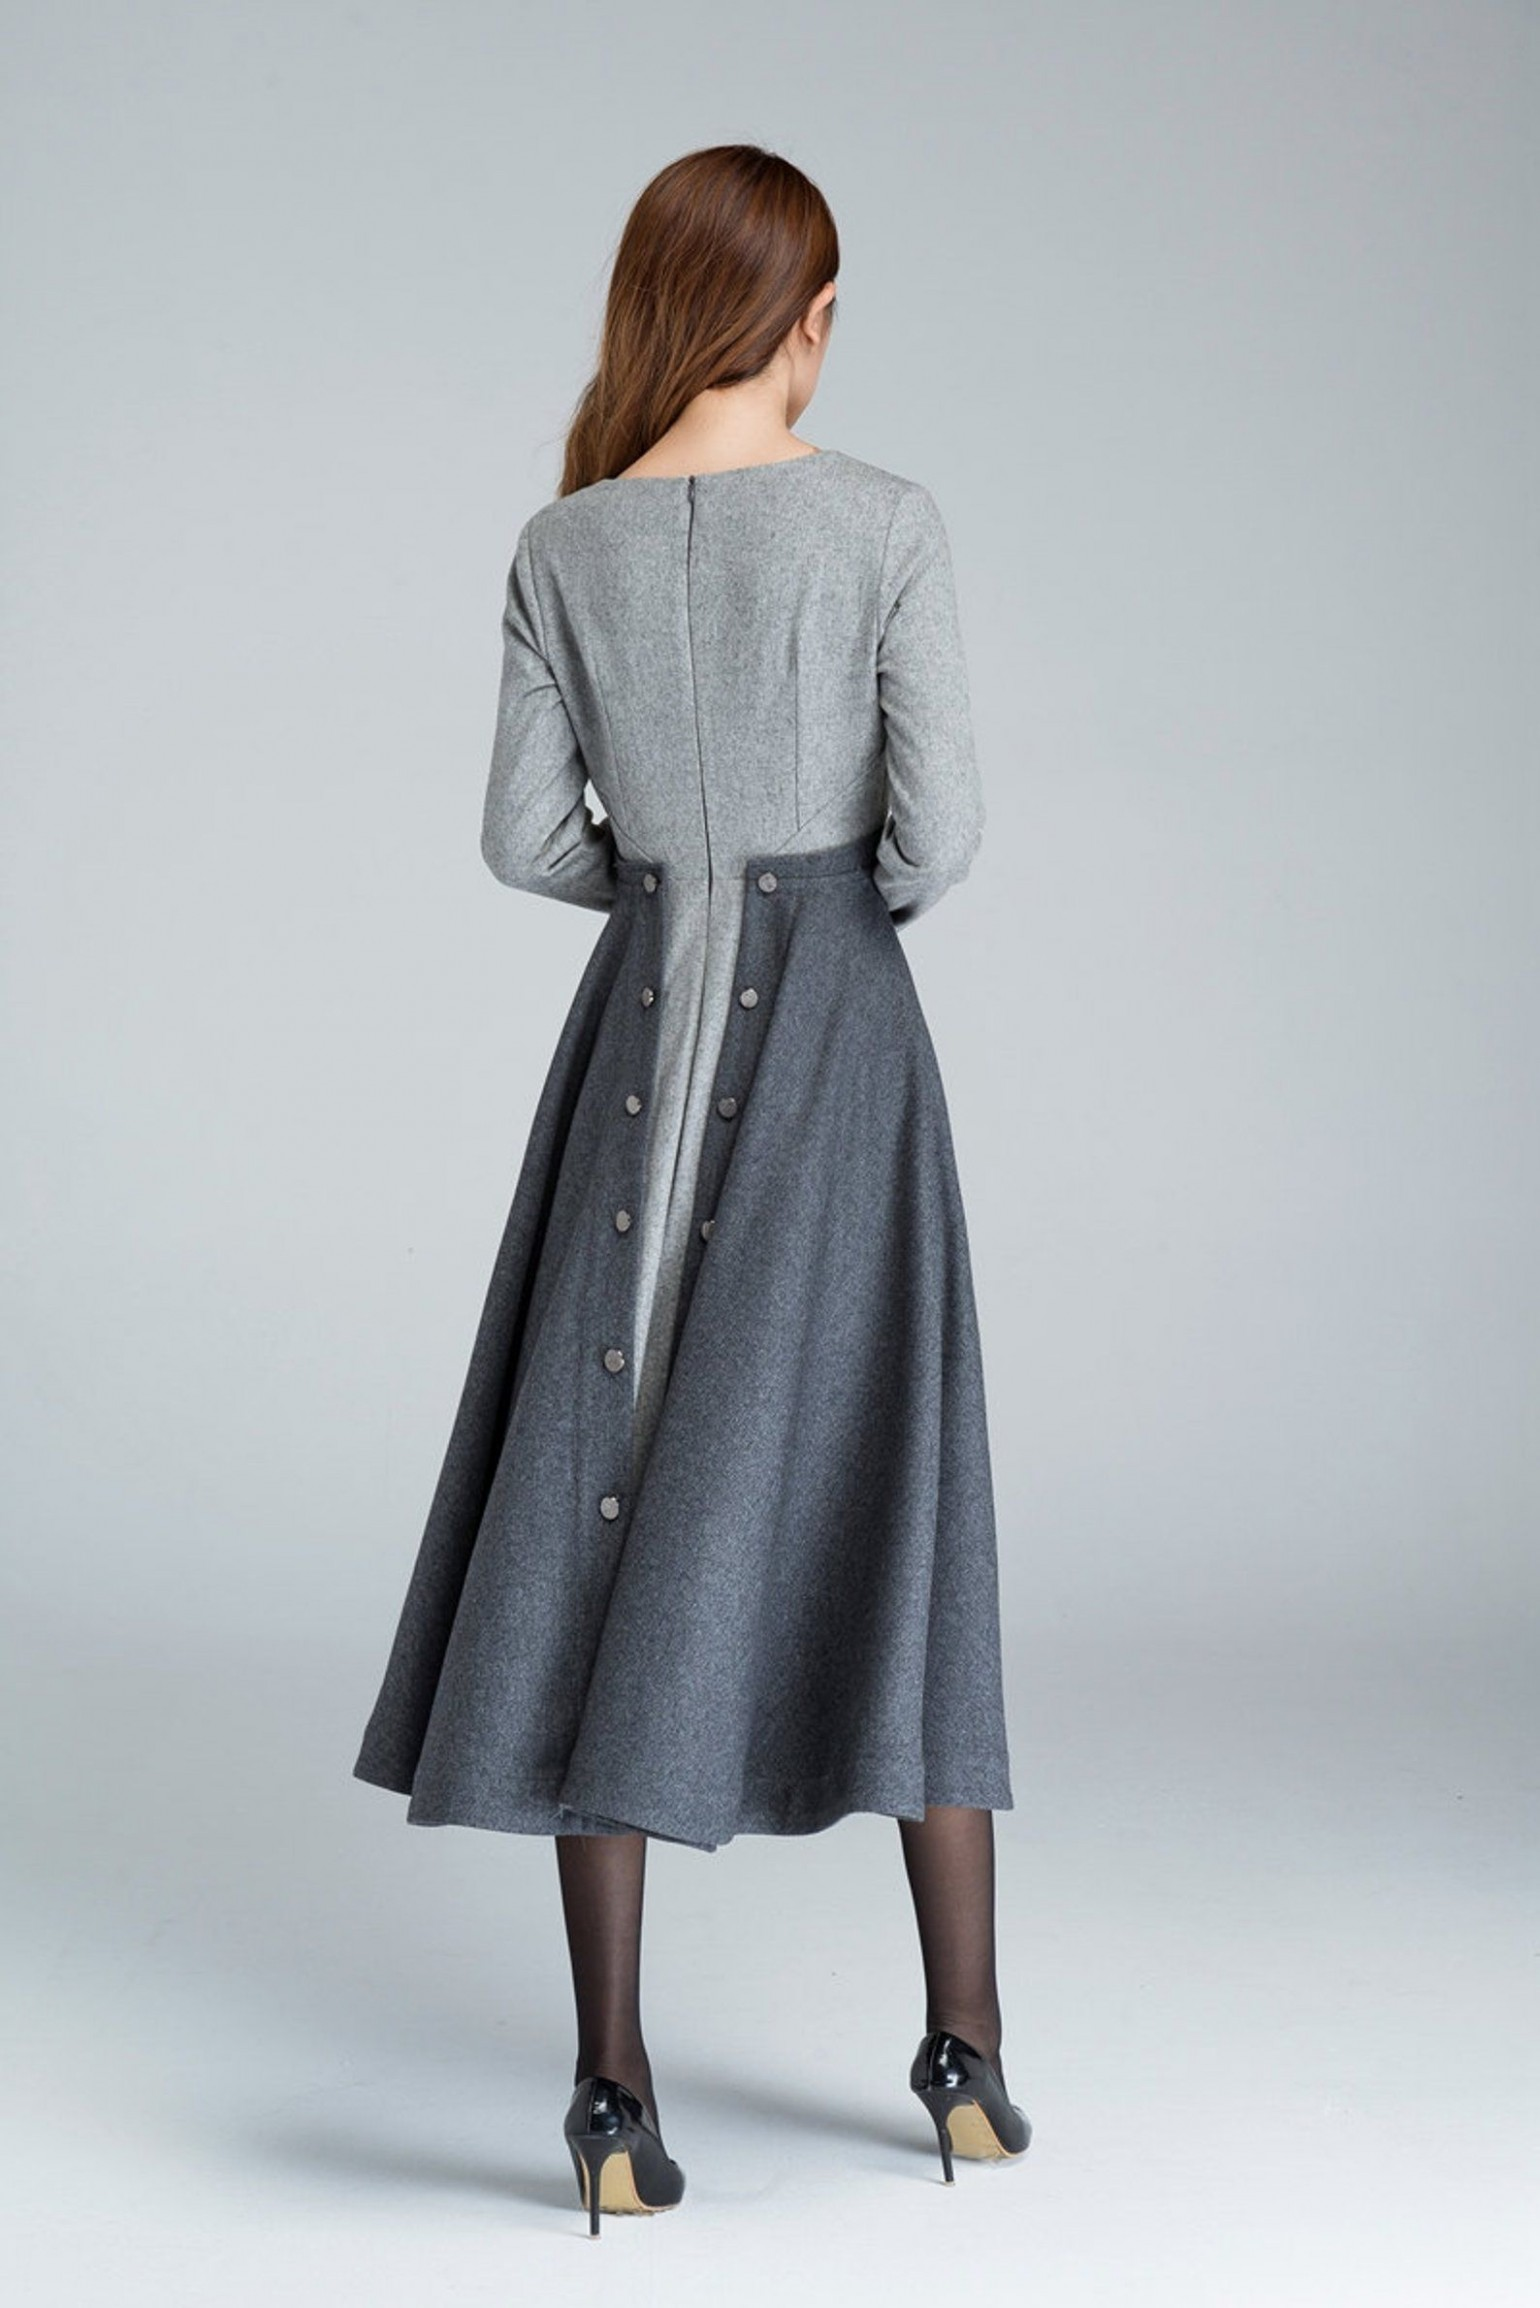 11s grey fit and flare wool dress, womens dresses, winter dress winter kleider